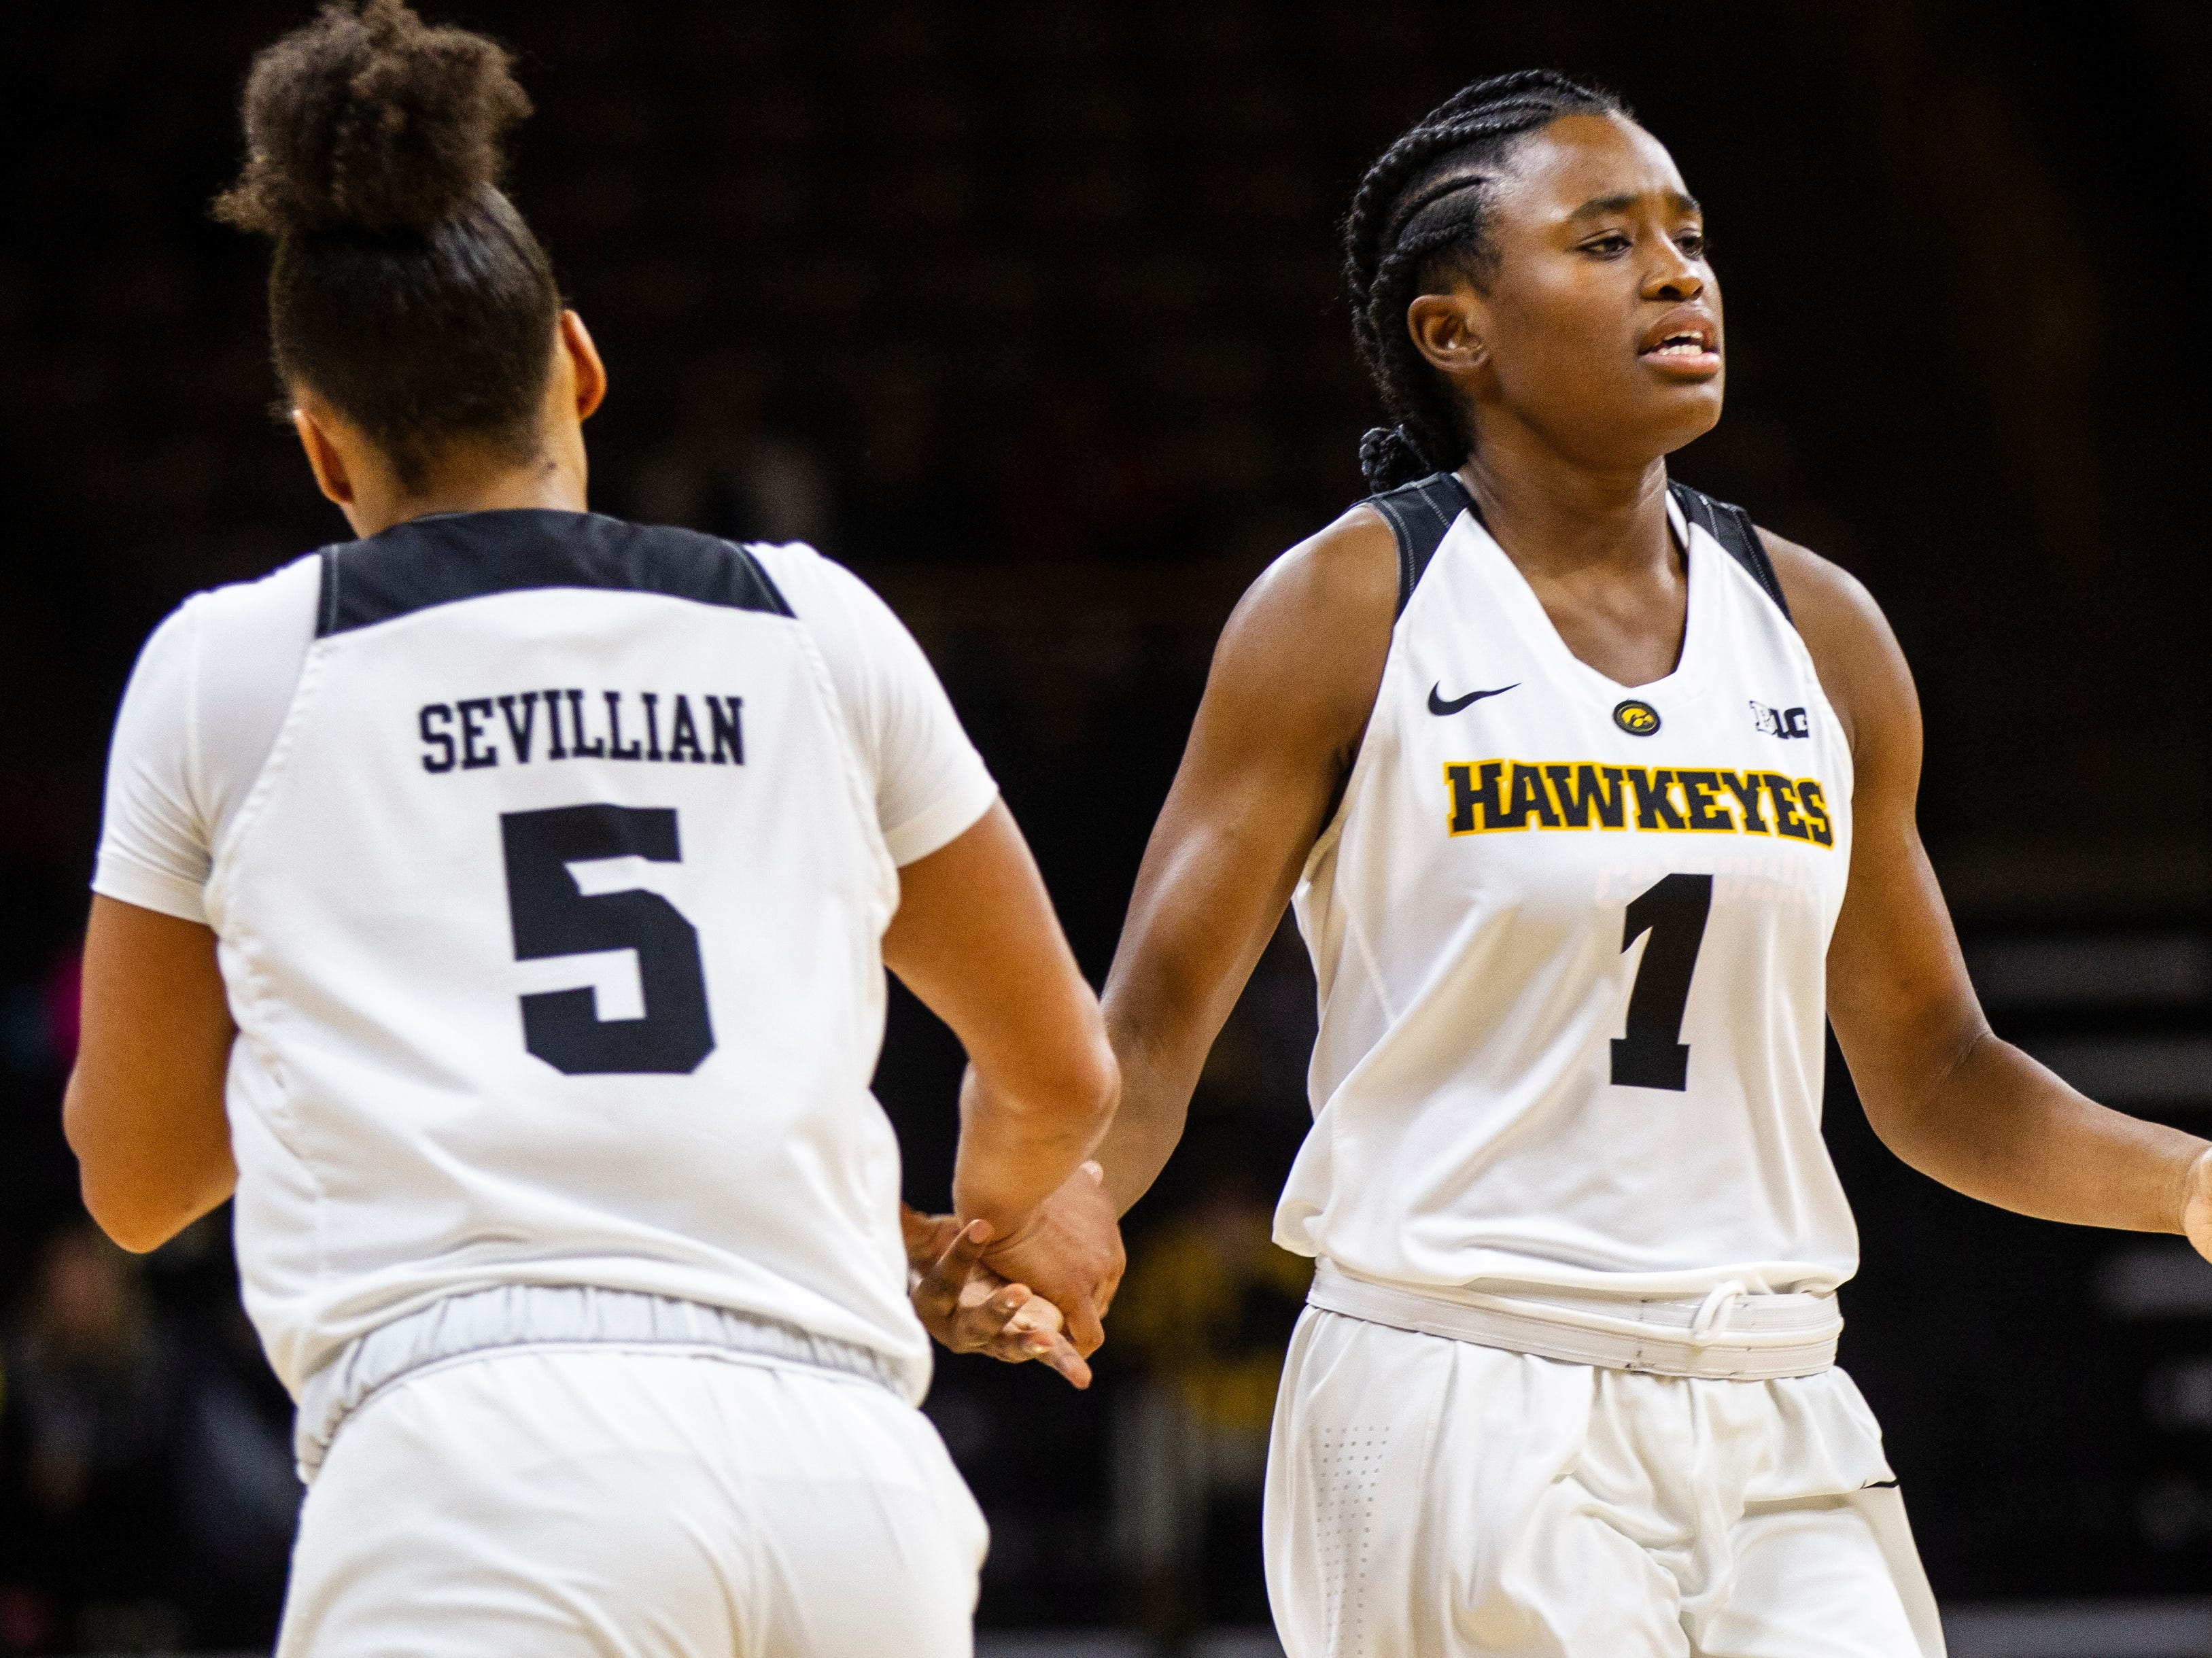 Iowa guard Tomi Taiwo (1) high-fives Iowa guard Alexis Sevillian (5) on her way into the game during a women's basketball exhibition basketball game on Tuesday, Nov. 6, 2018, at Carver-Hawkeye Arena in Iowa City.